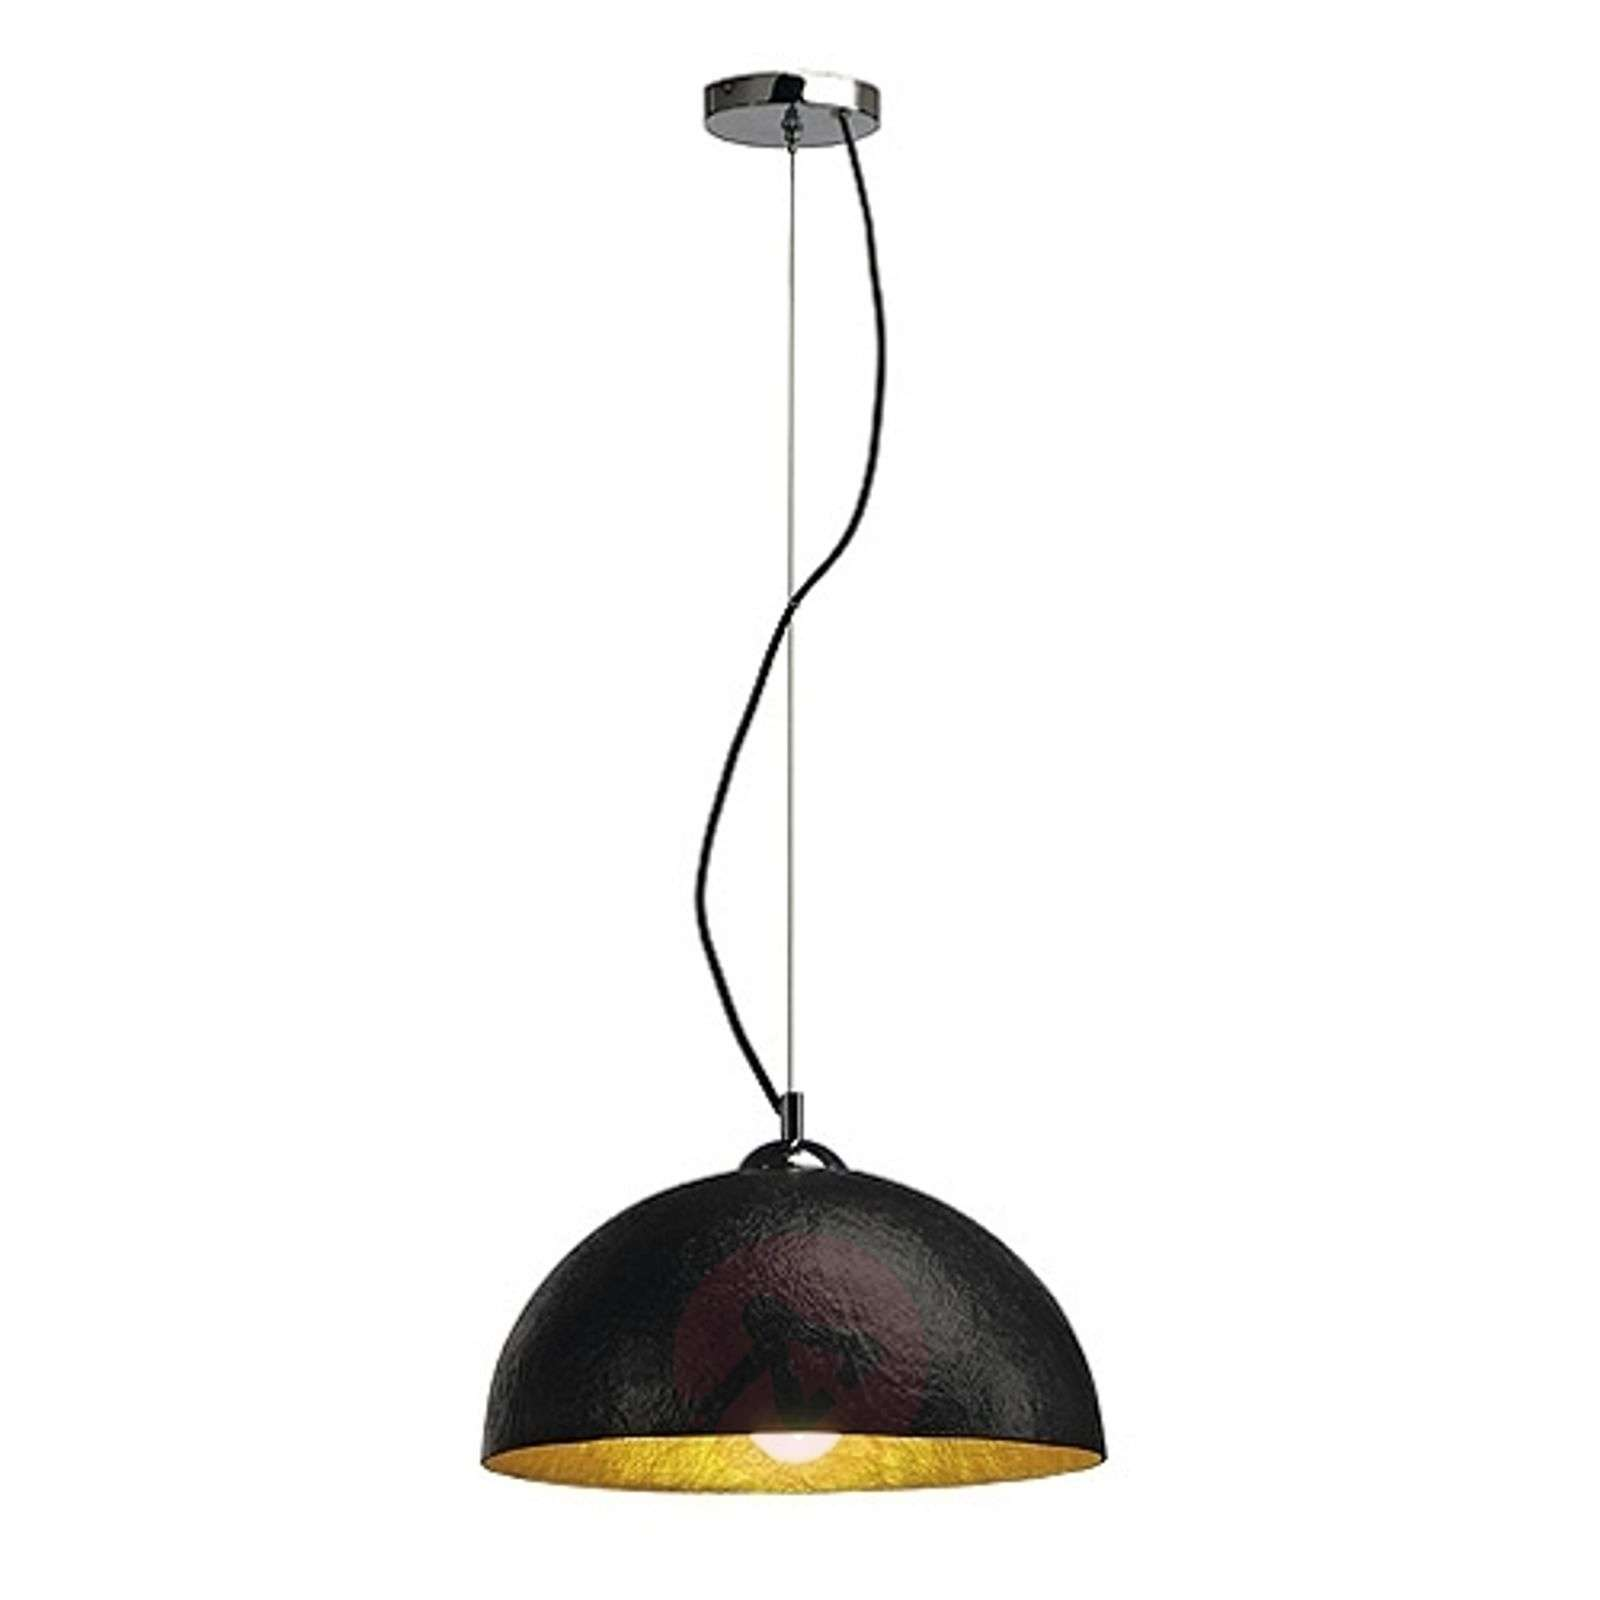 Moderne hanglamp FORCHINI-2-5504107X-01